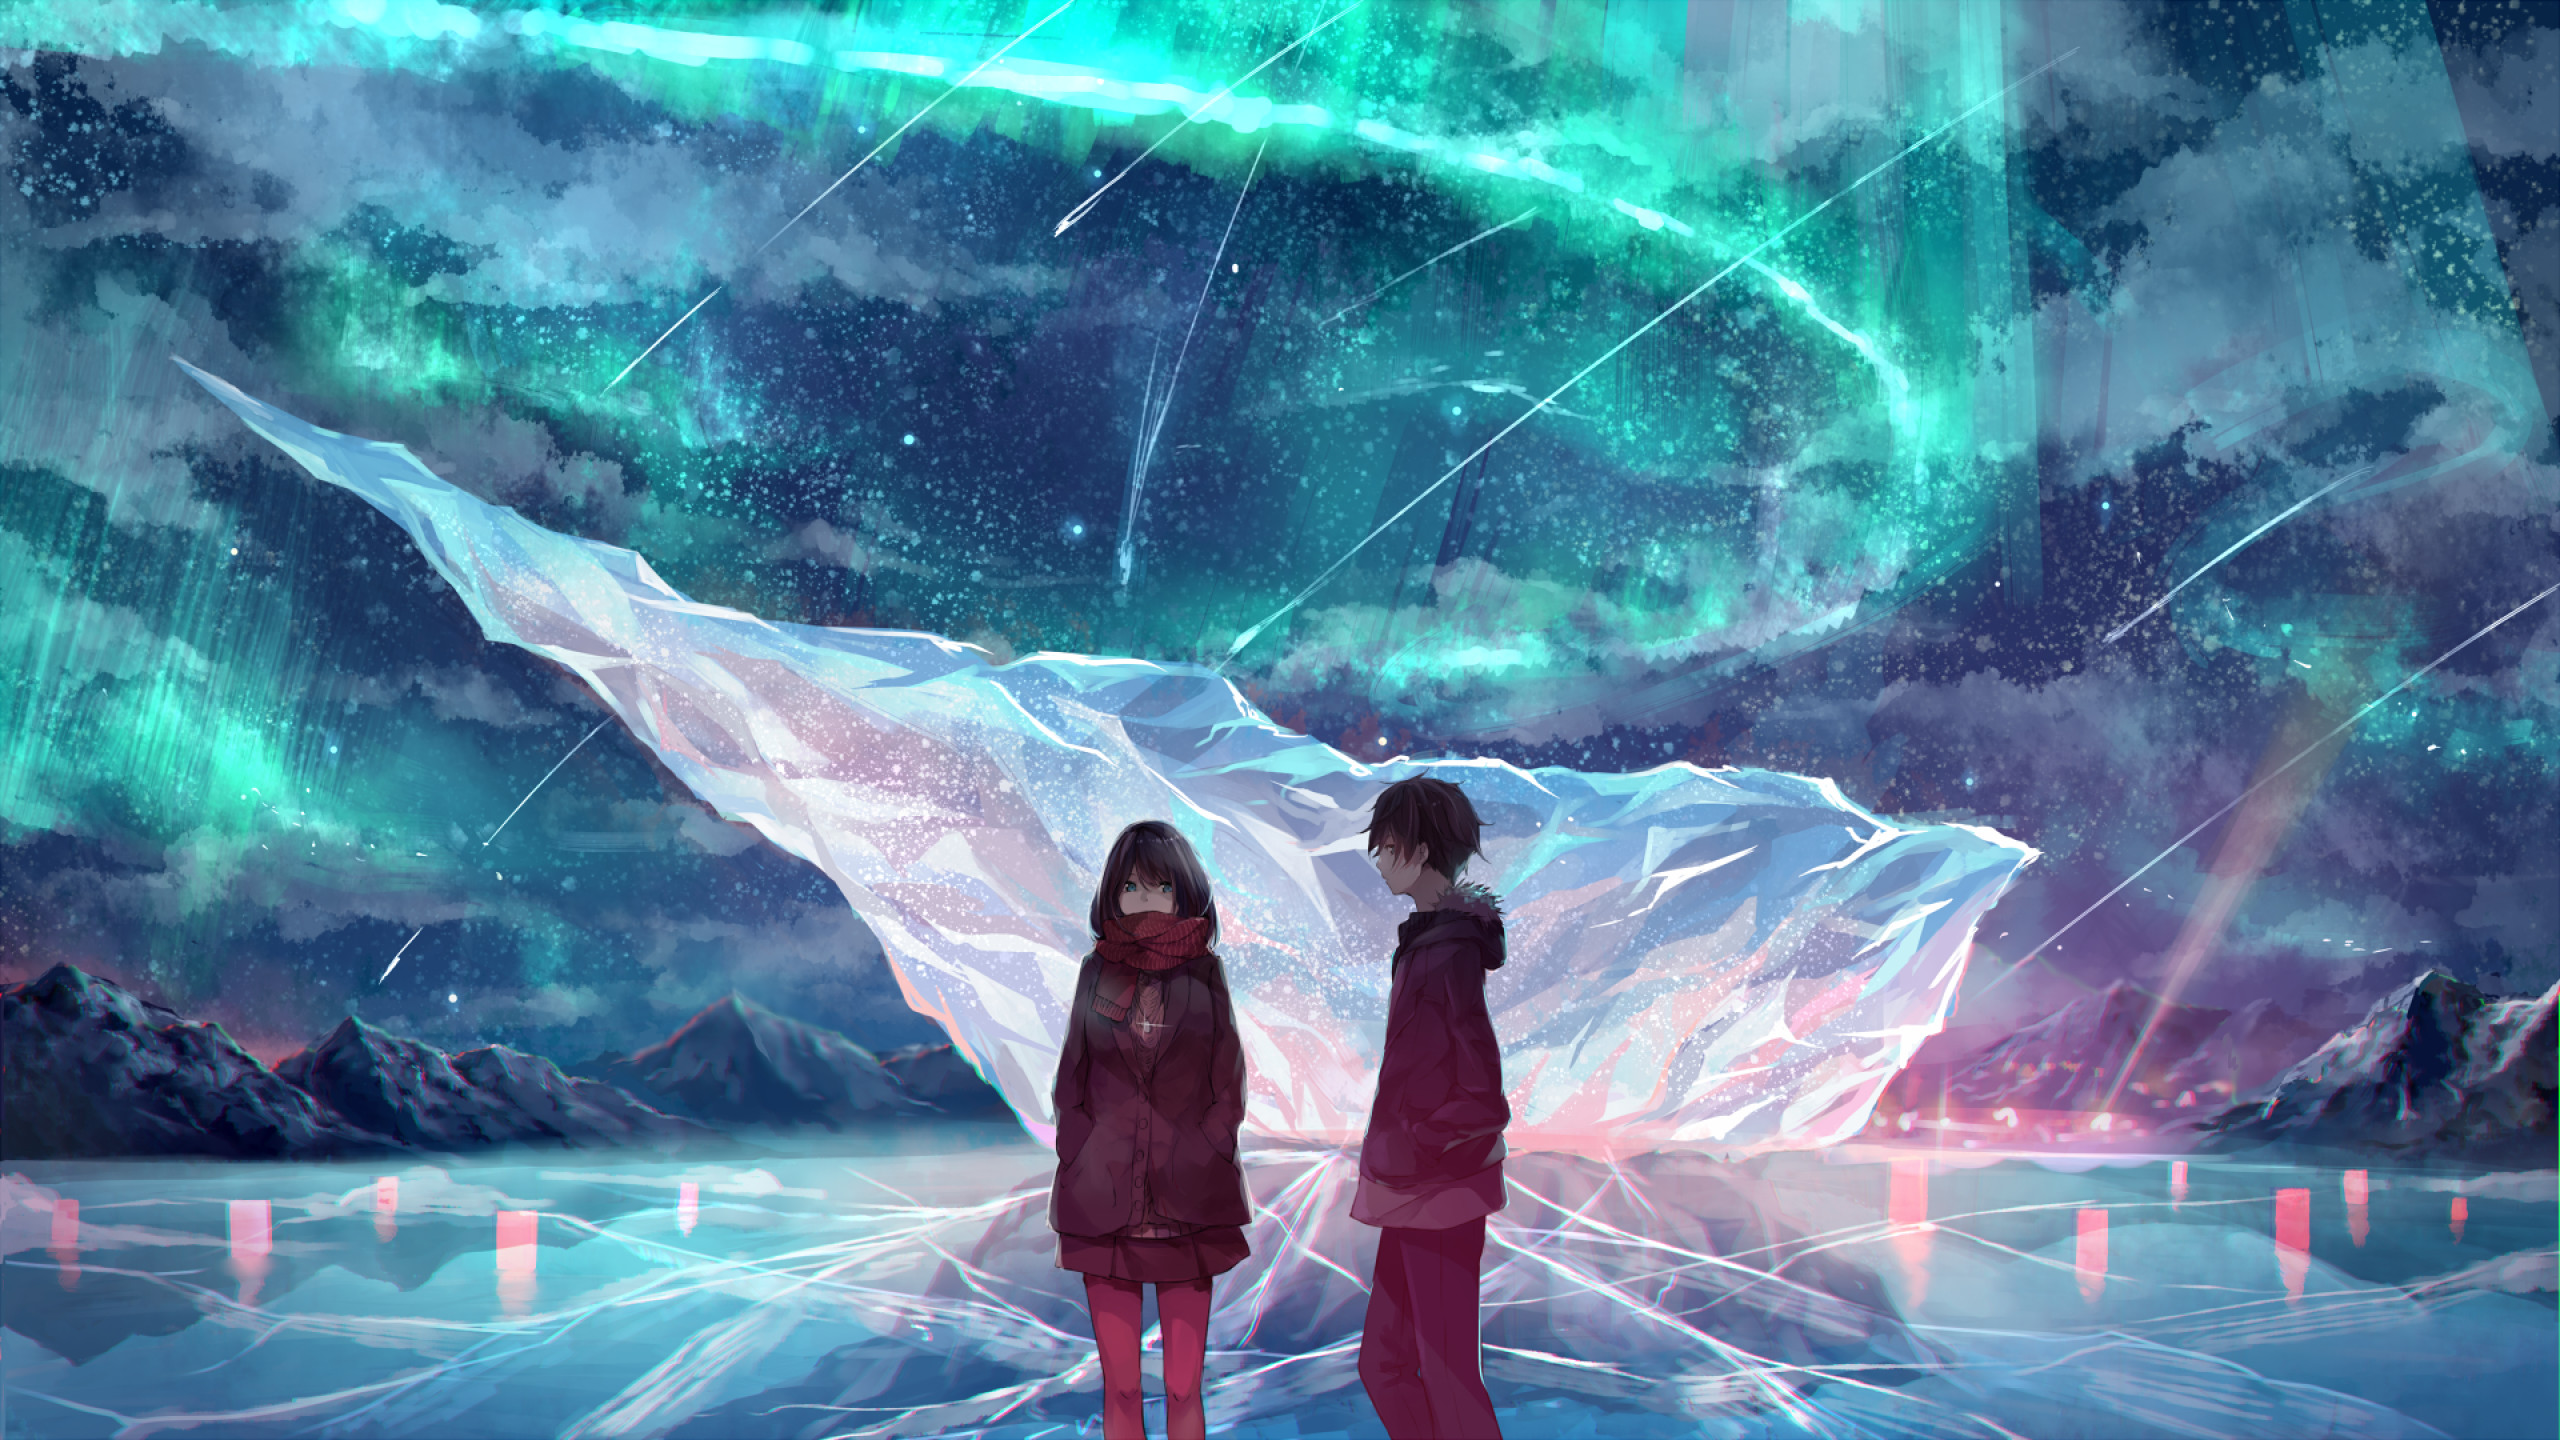 Anime couple wallpaper 74 images - Anime full hd download ...